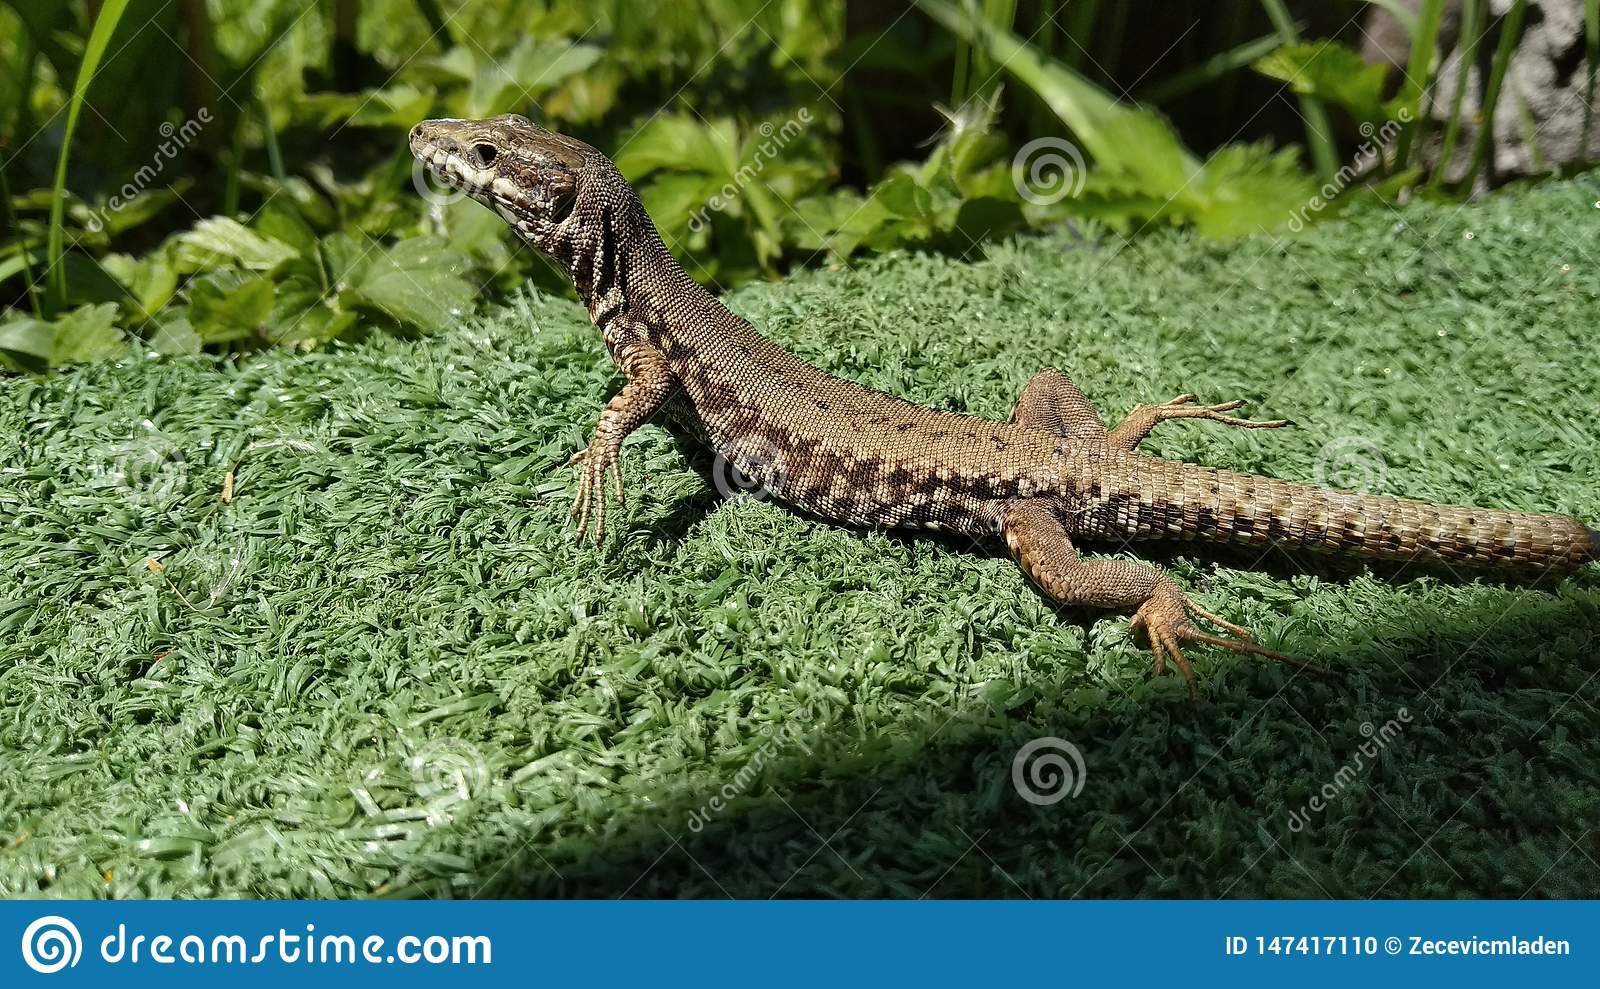 A lizard sunbathing and posing for a photo